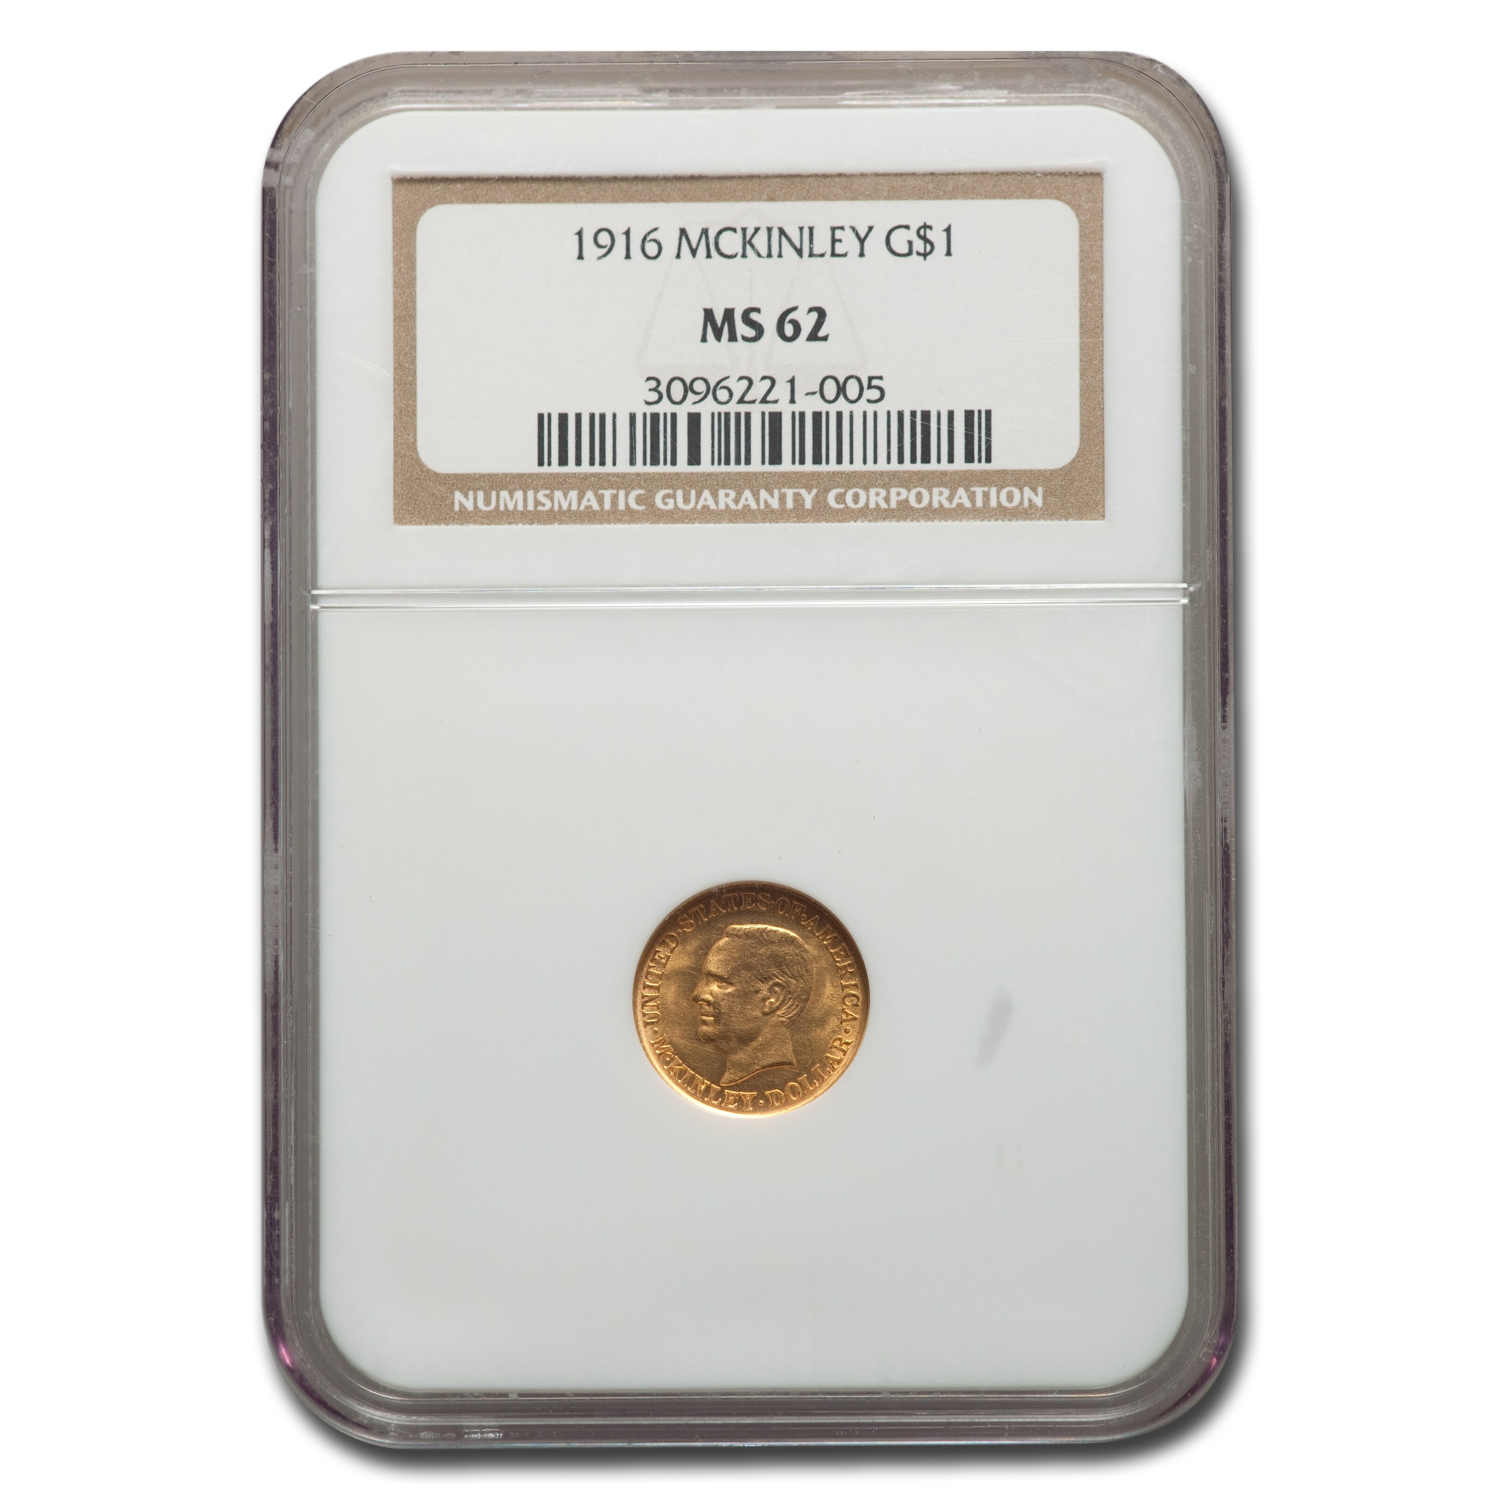 1916 Gold $1.00 McKinley Memorial MS-62 NGC